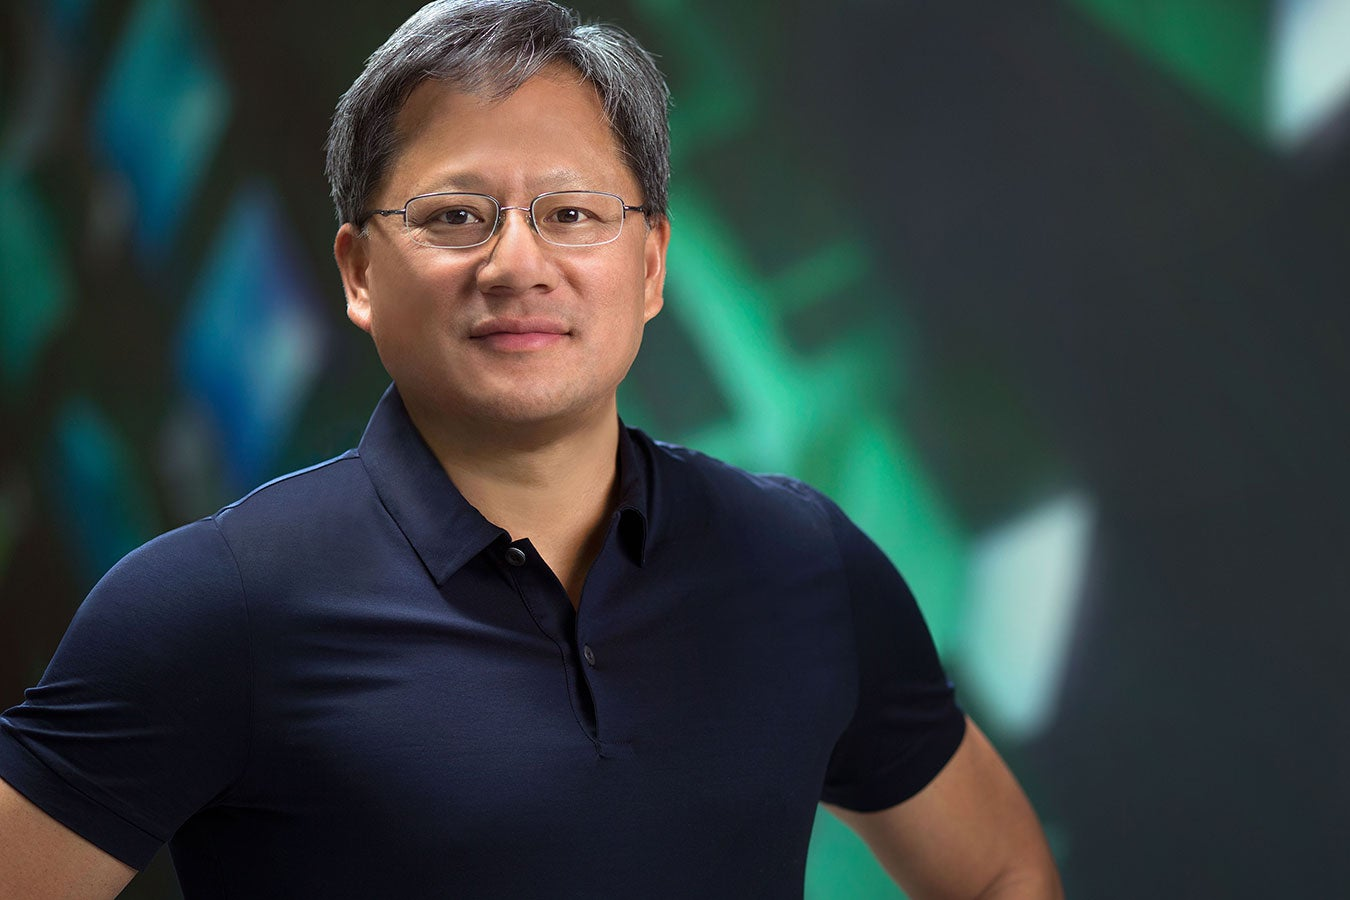 Nvidia CEO Says New GPUs Won't Be Available For A 'Long Time'